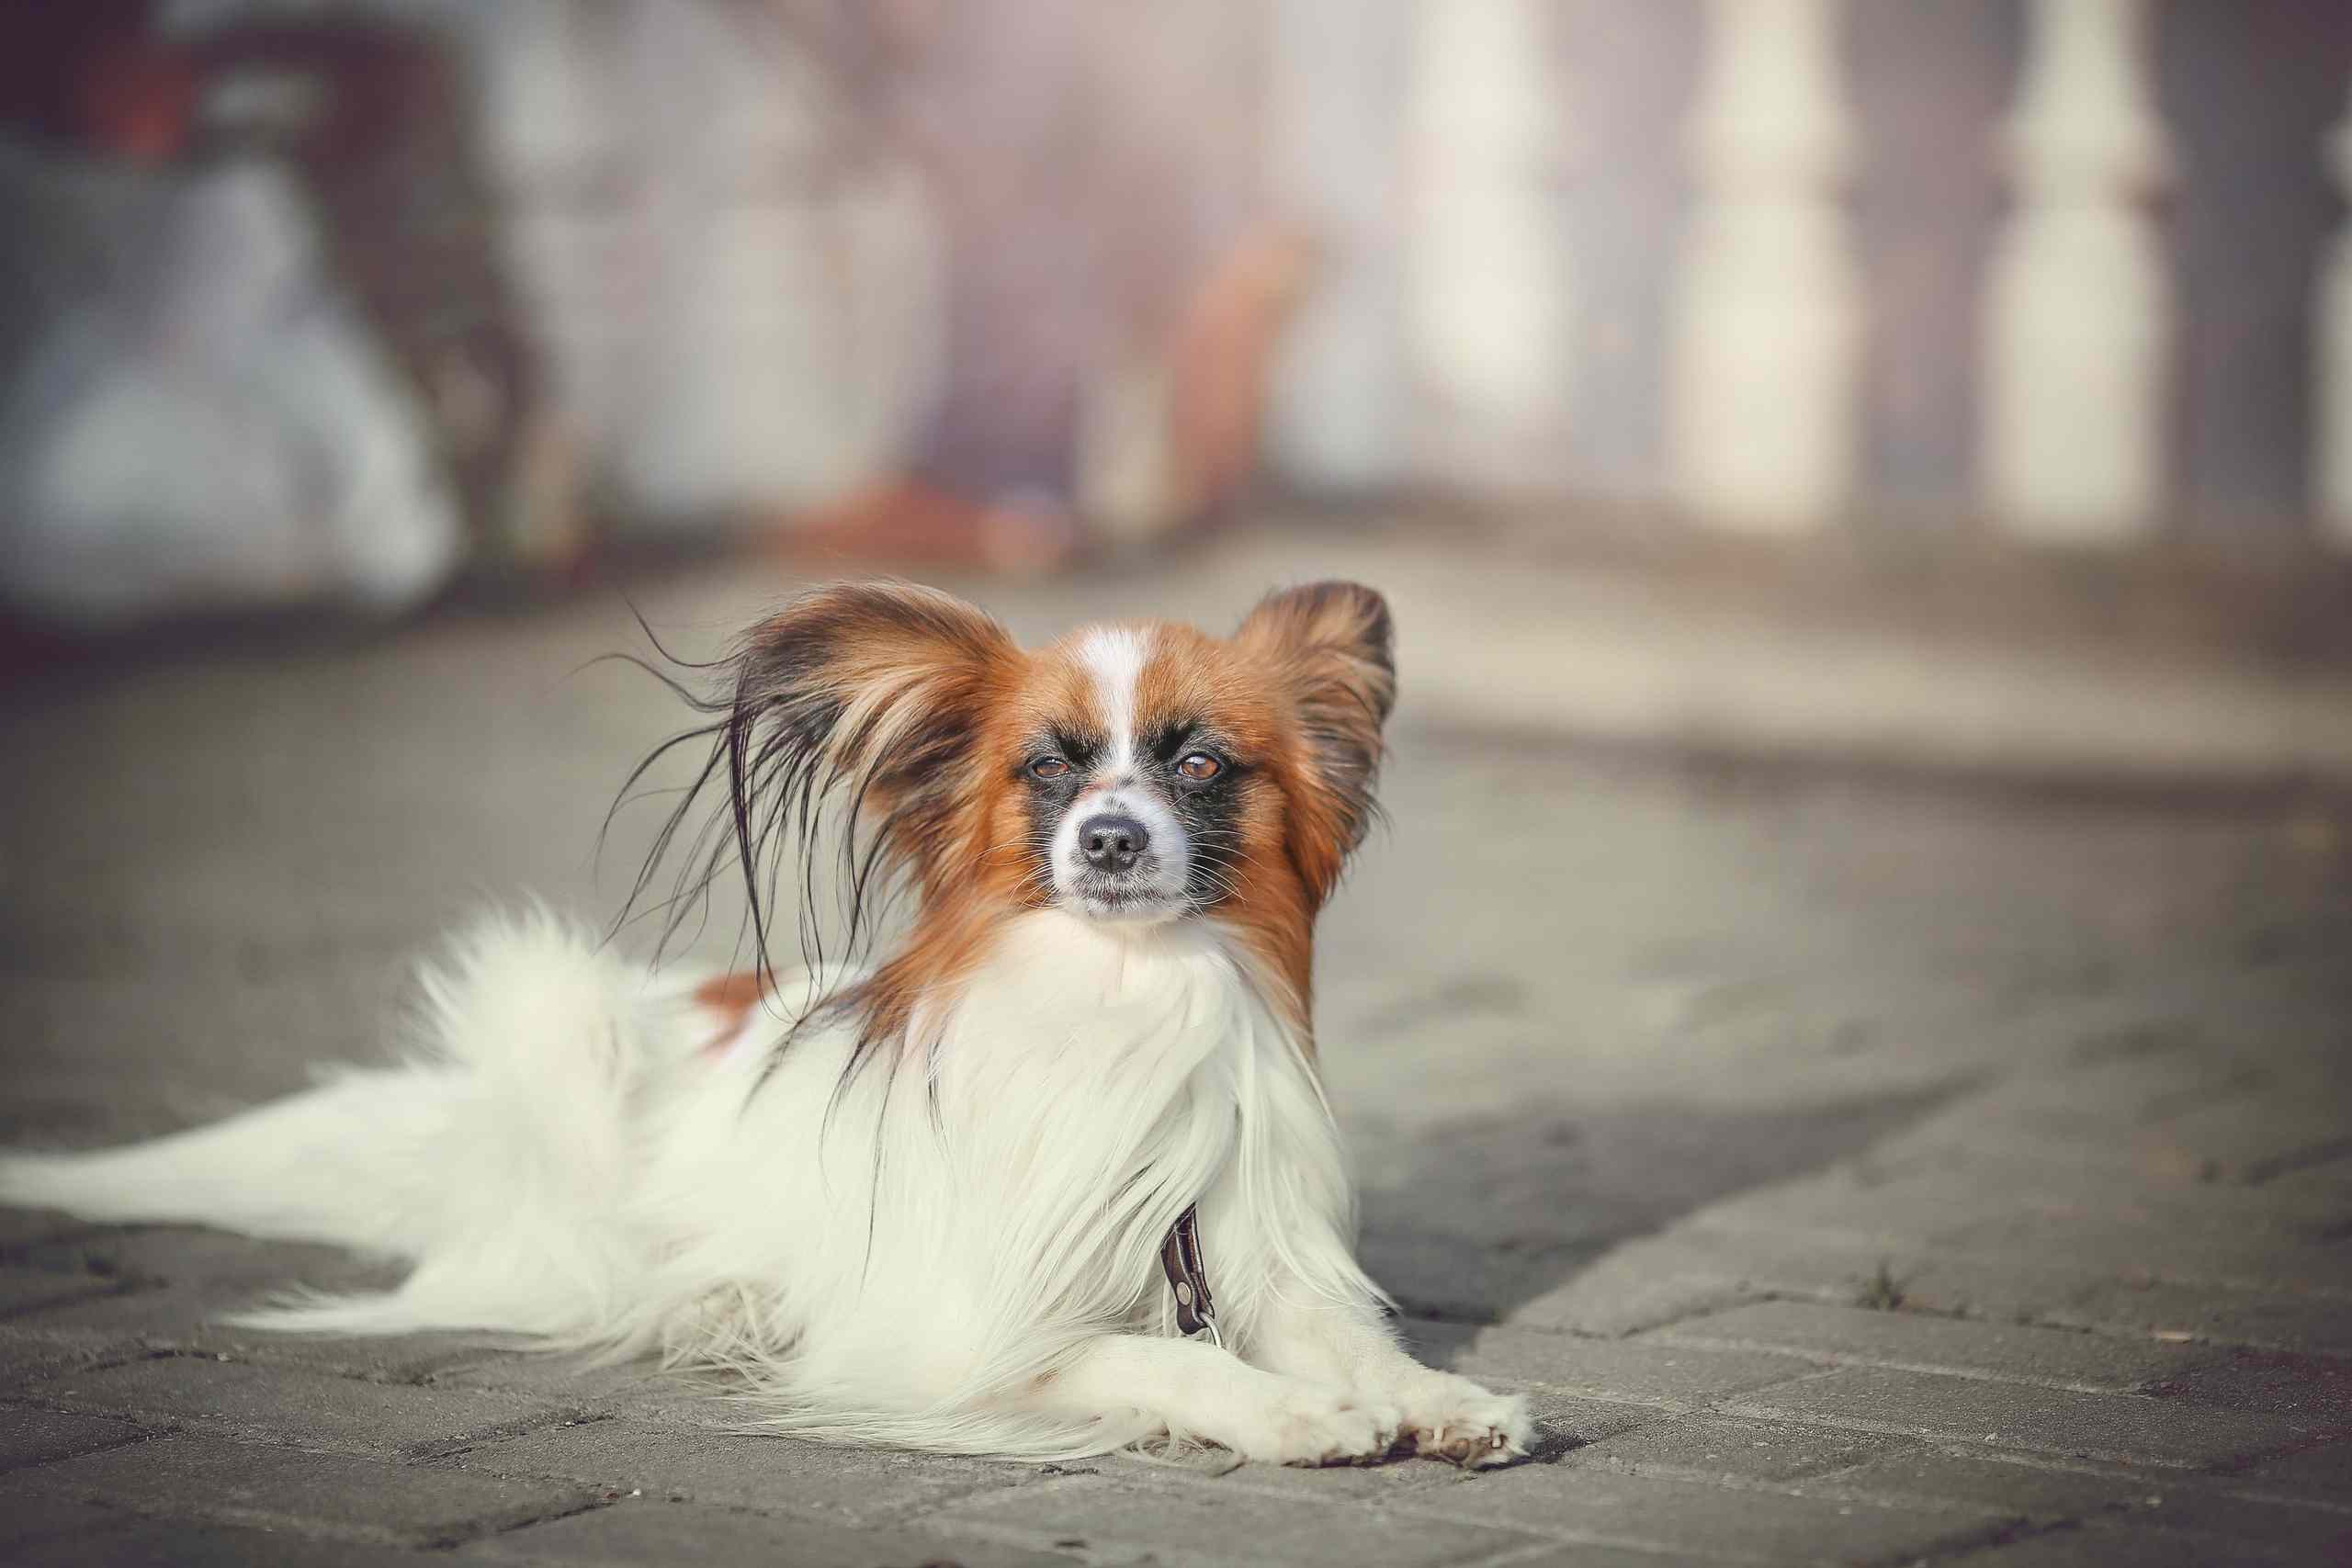 A Papillon dog sitting on the ground in the wind.